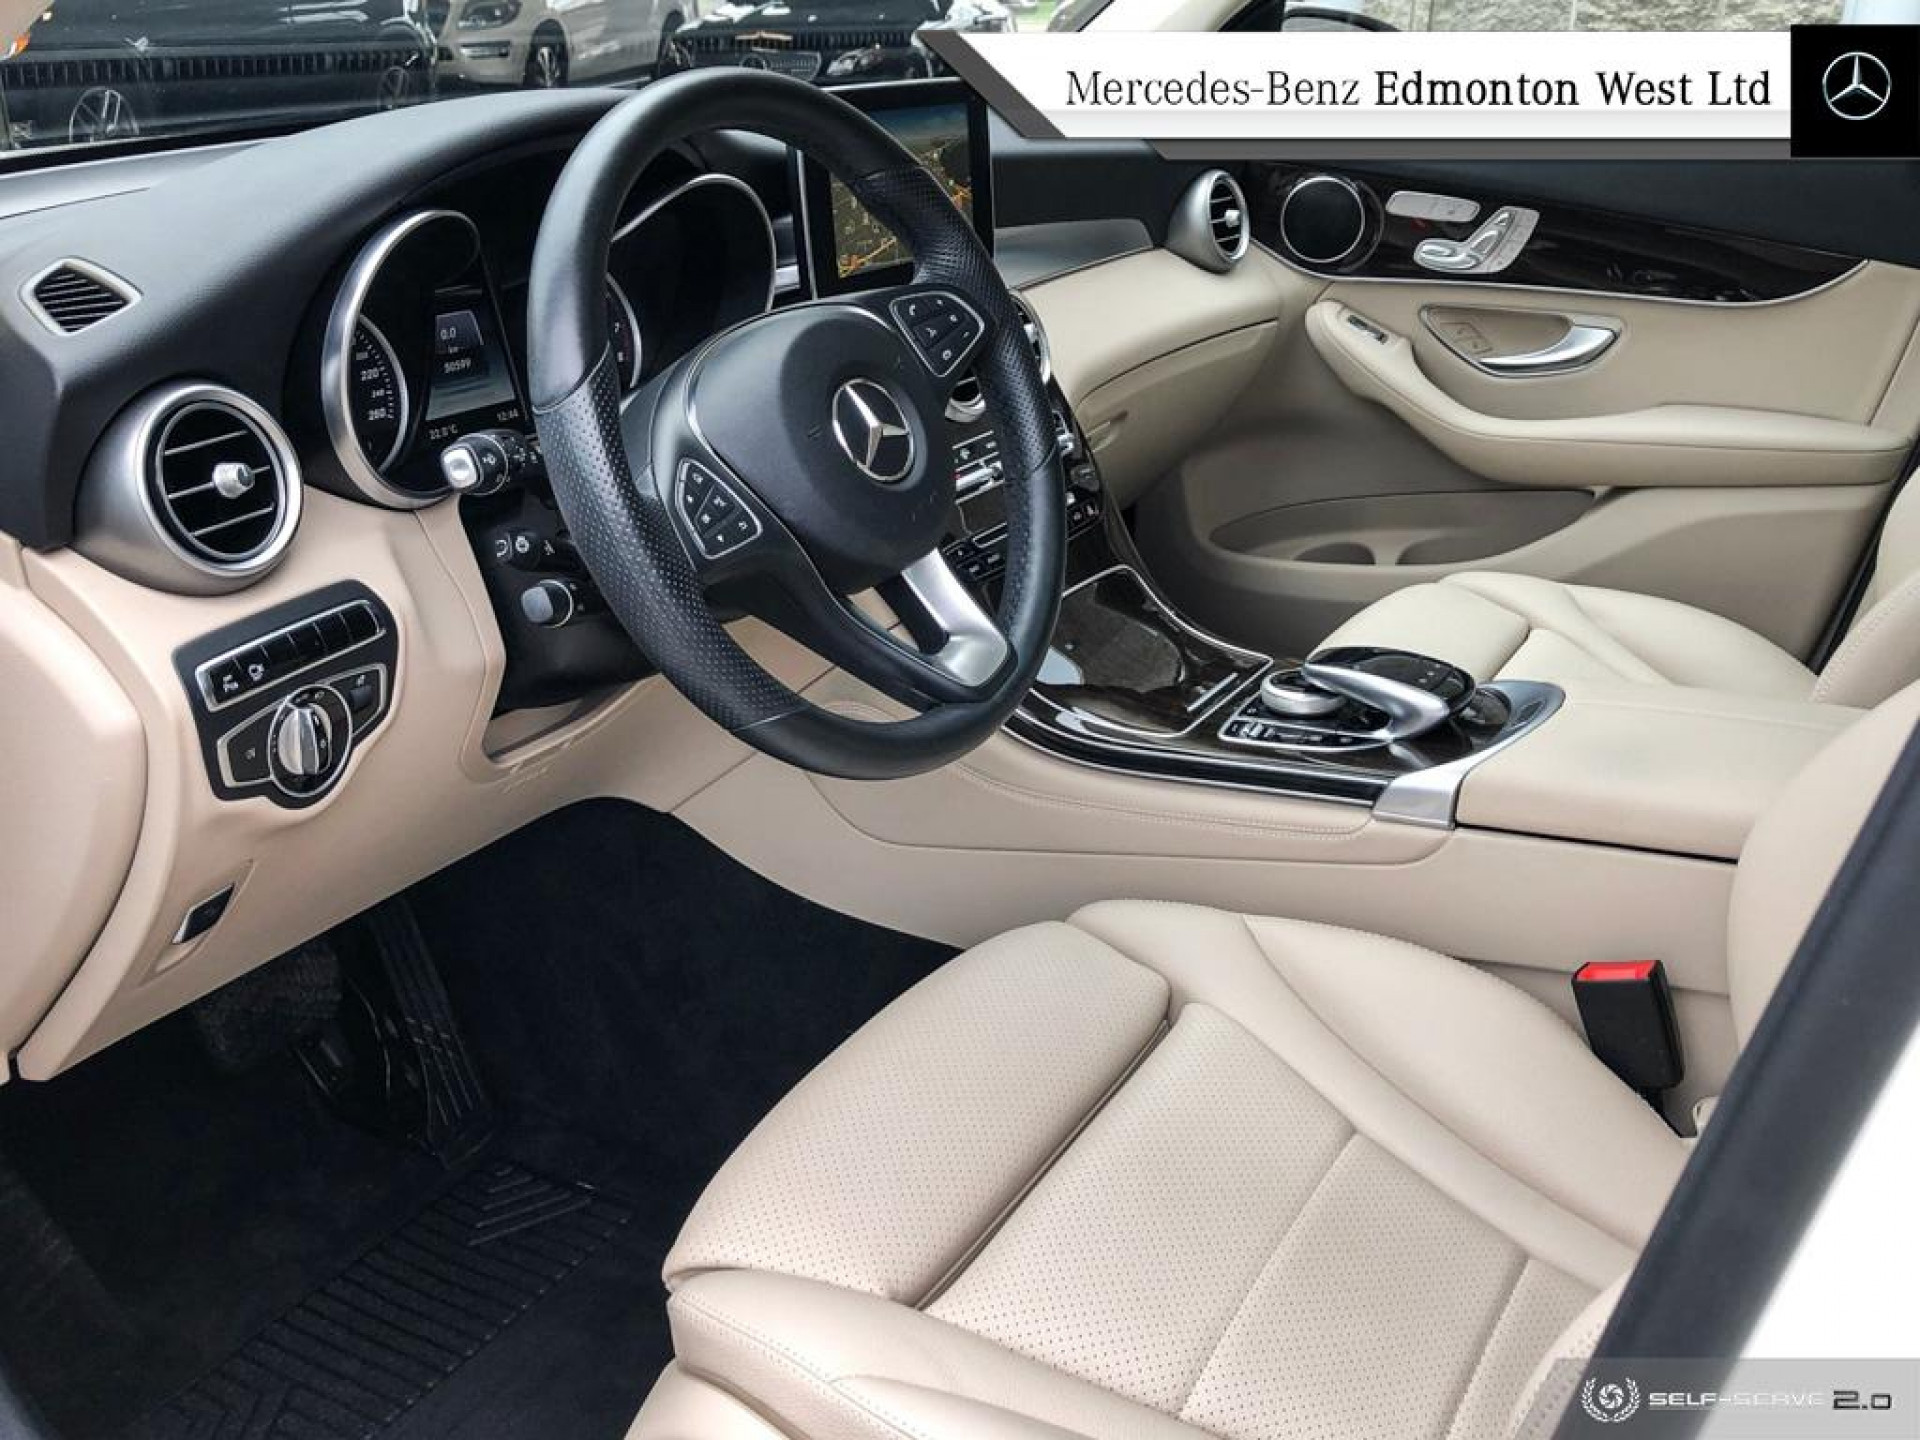 Certified Pre-Owned 2016 Mercedes Benz GLC-Class 300 4MATIC Star Certified, Clean Carproof, One Owner, Alberta Only Vehicle, Extended Warranty until July 29, 2022 or 120,000 kilometres